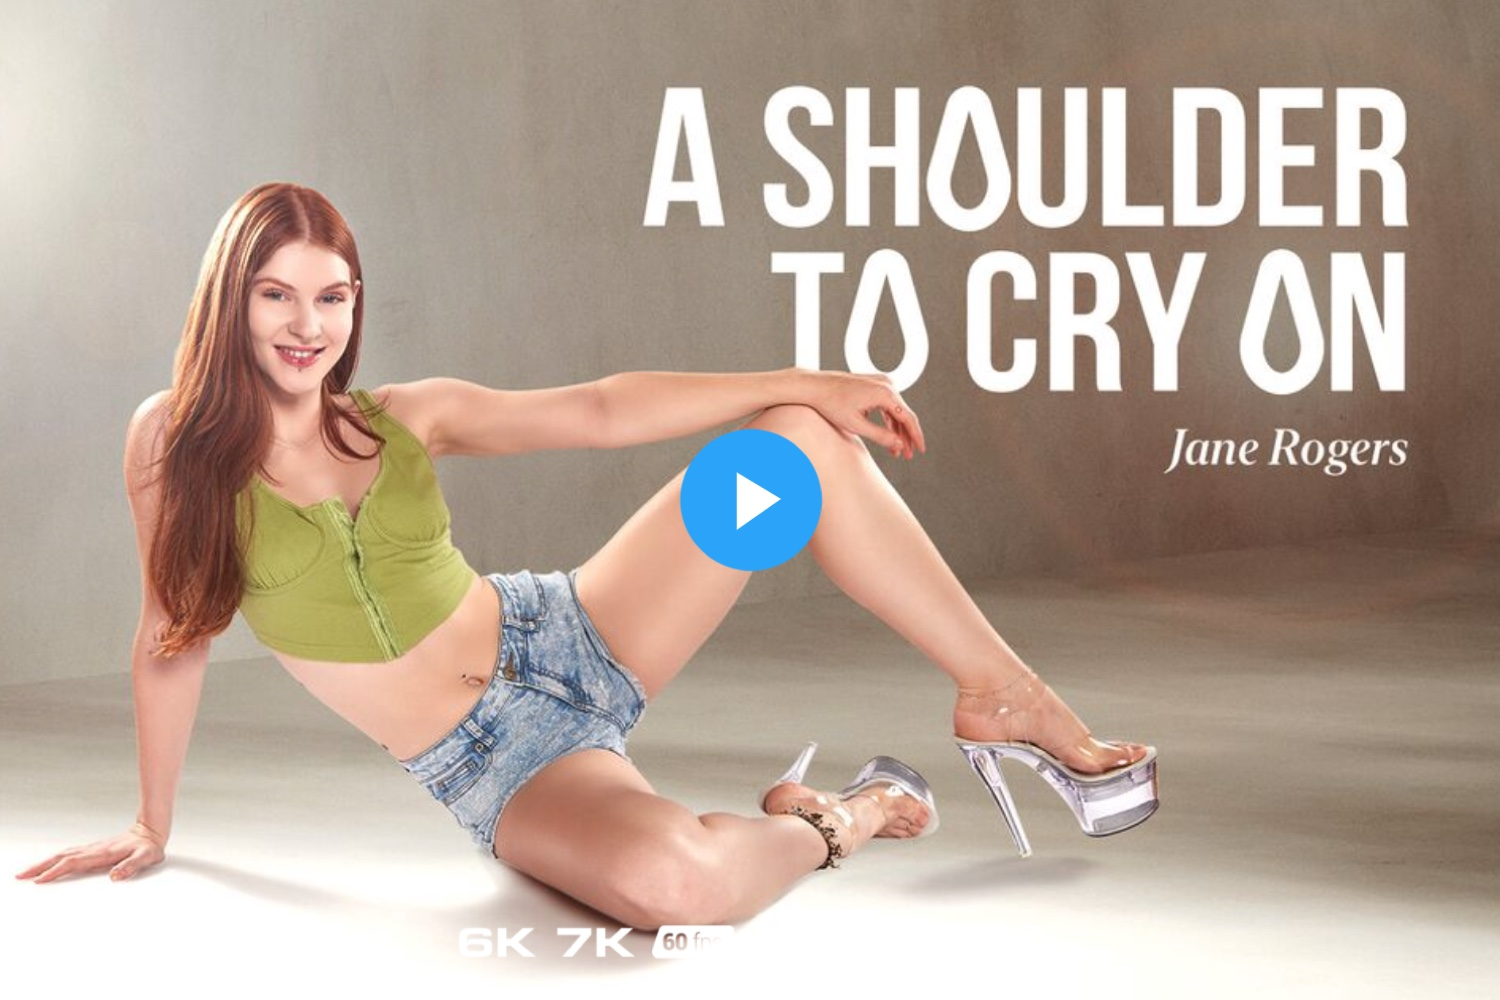 A Shoulder to Cry On - Jane Rogers VR Porn - Jane Rogers Virtual Reality Porn